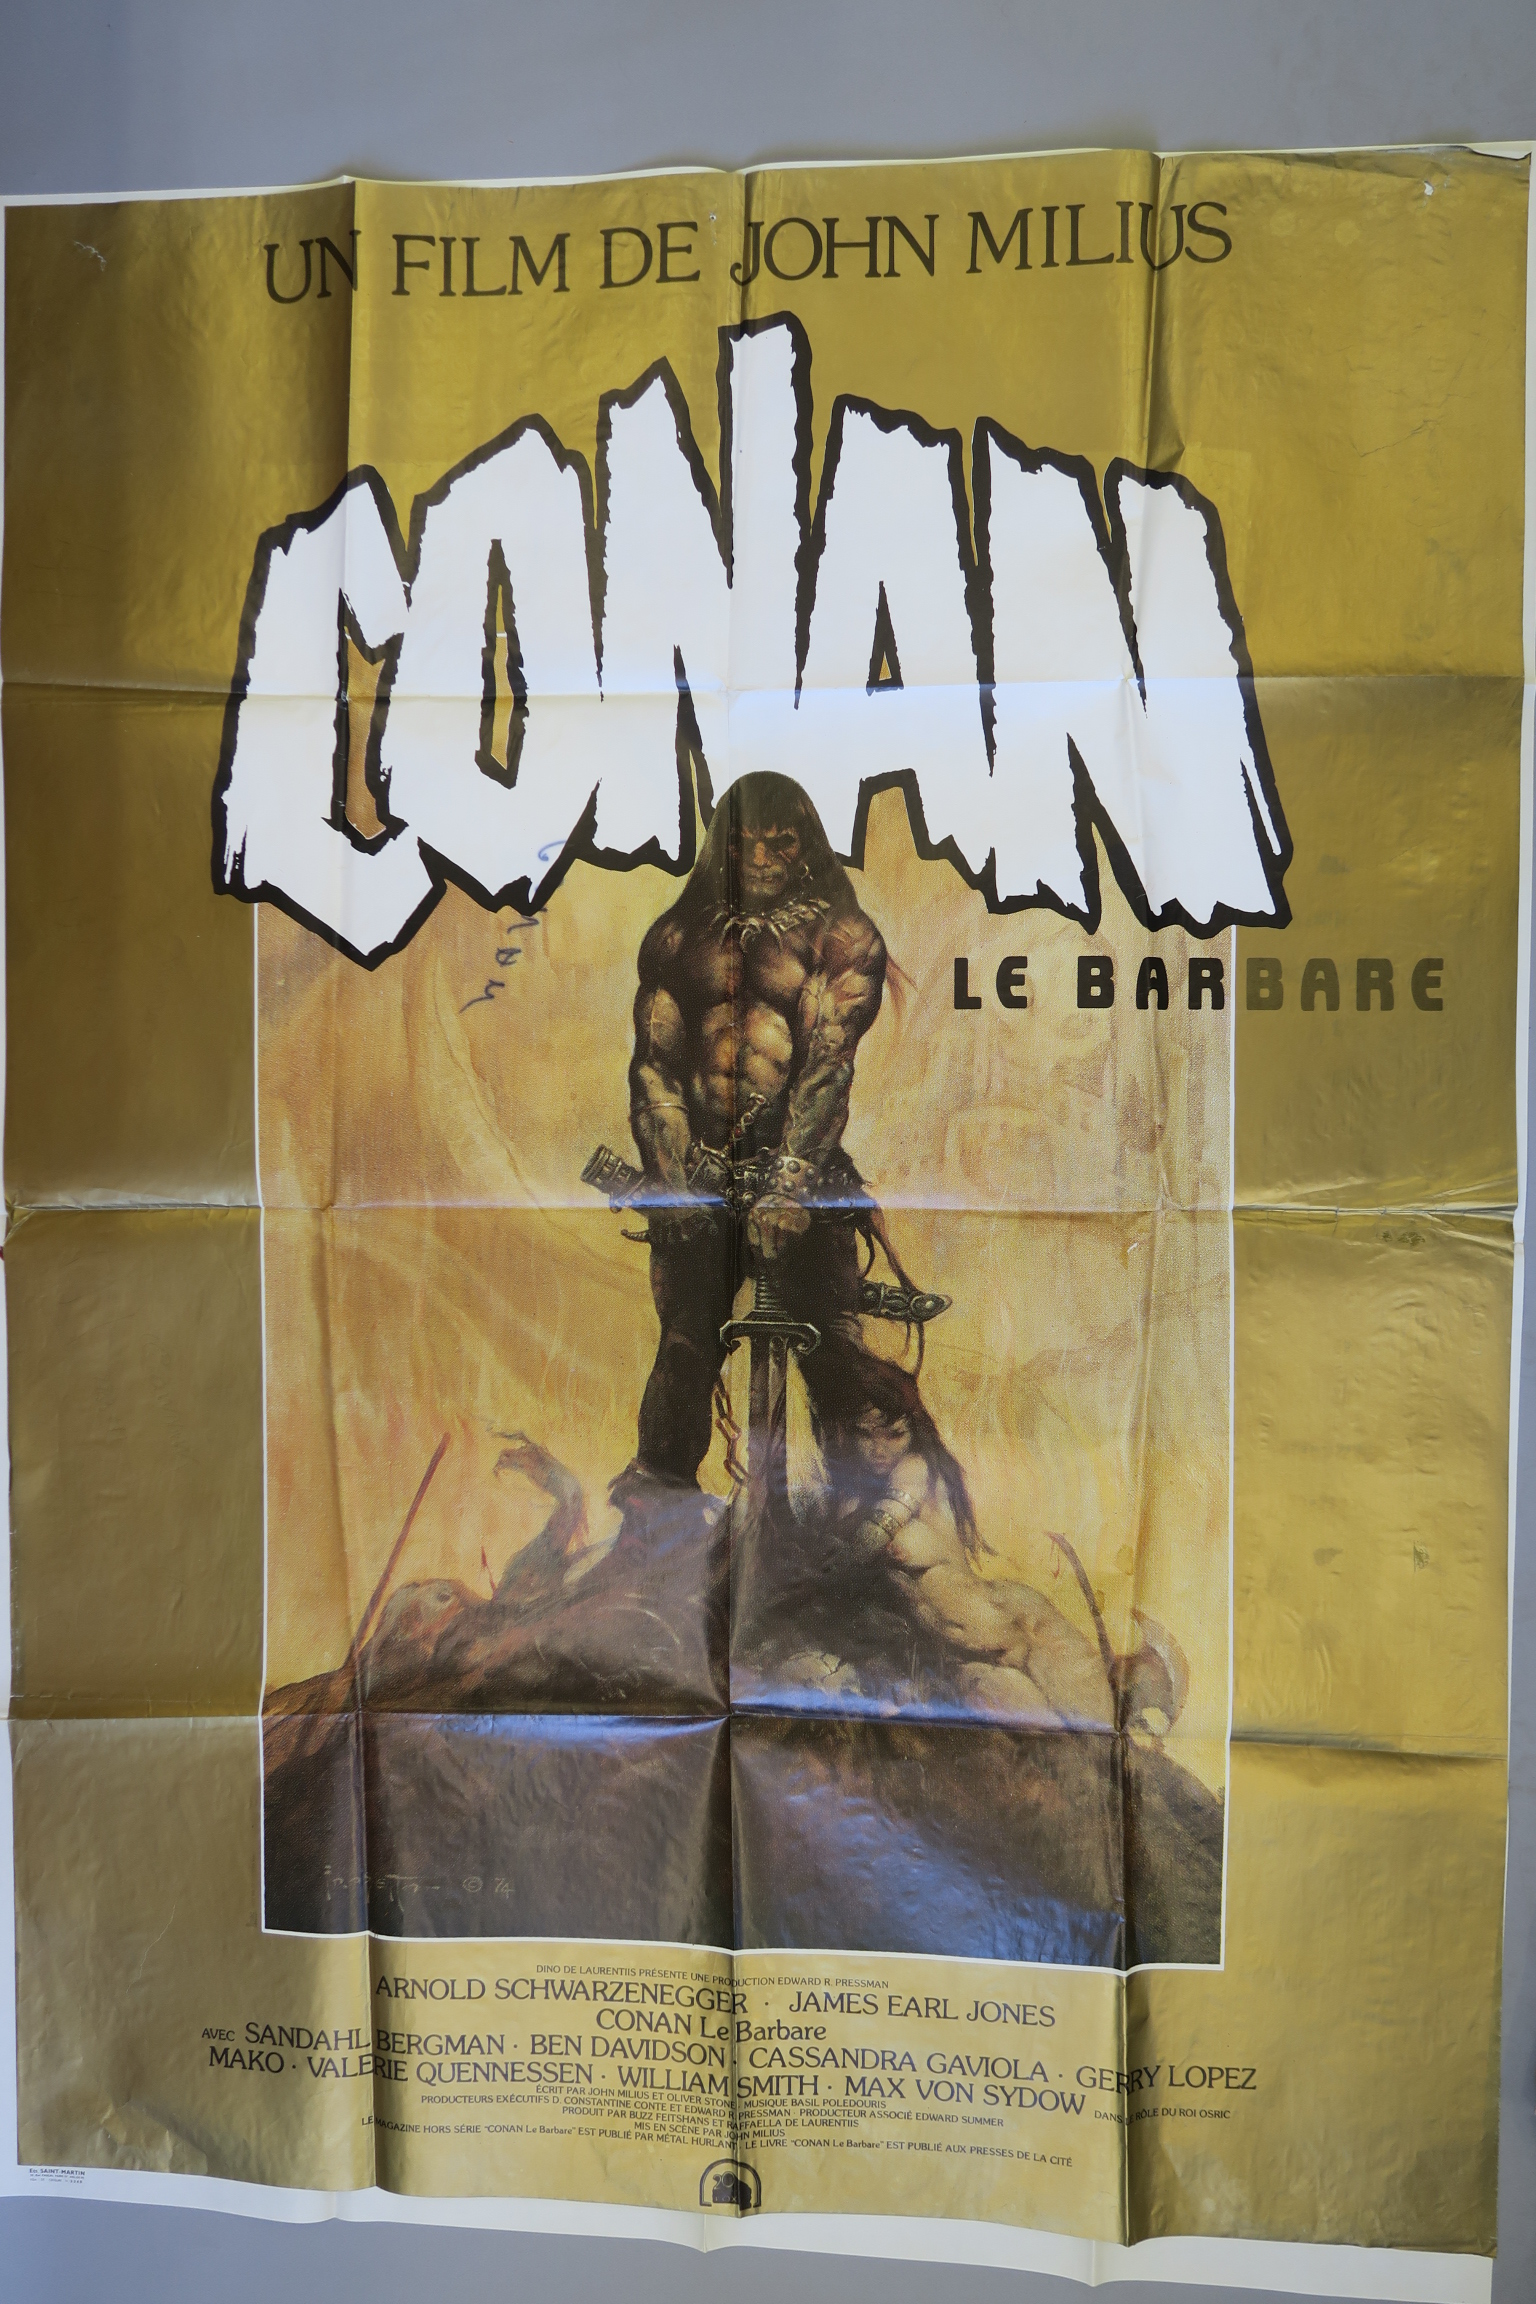 Lot 34 - Collection of 10 French Grande film posters inc The Vengeance of She (Hammer) starring Olinka